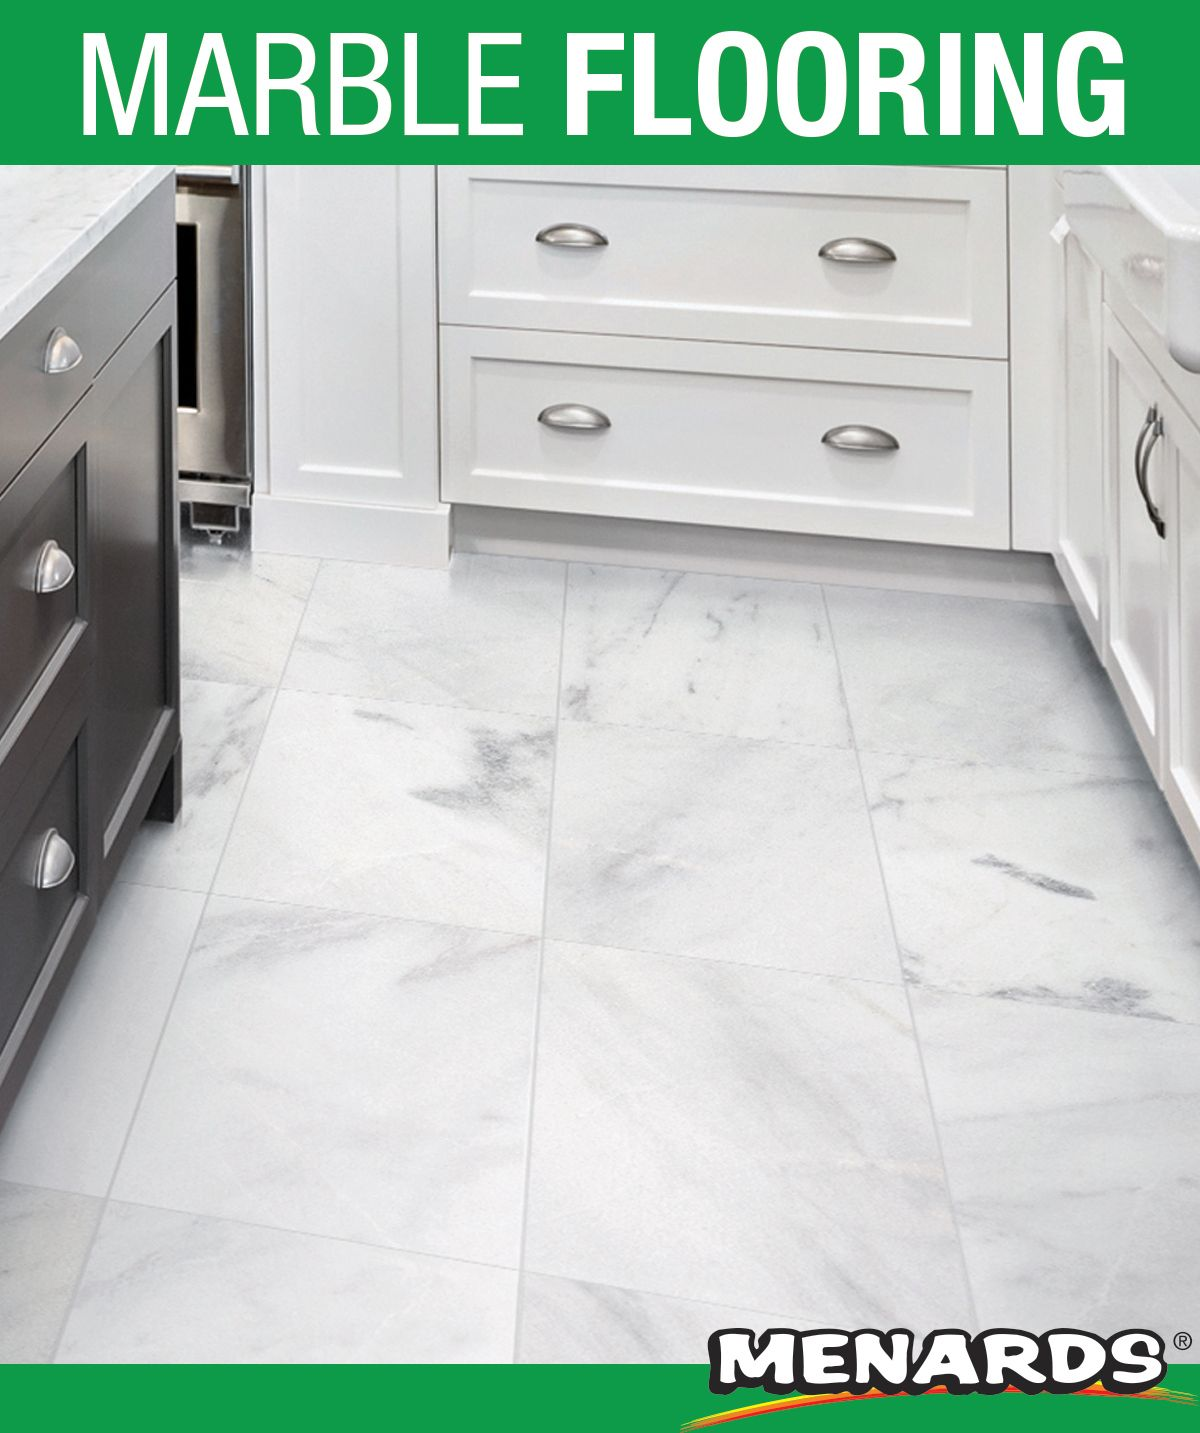 Ellis Fisher 12 X 24 Bianco Marble Floor And Wall Tile In 2020 Marble Floor Flooring Floor And Wall Tile